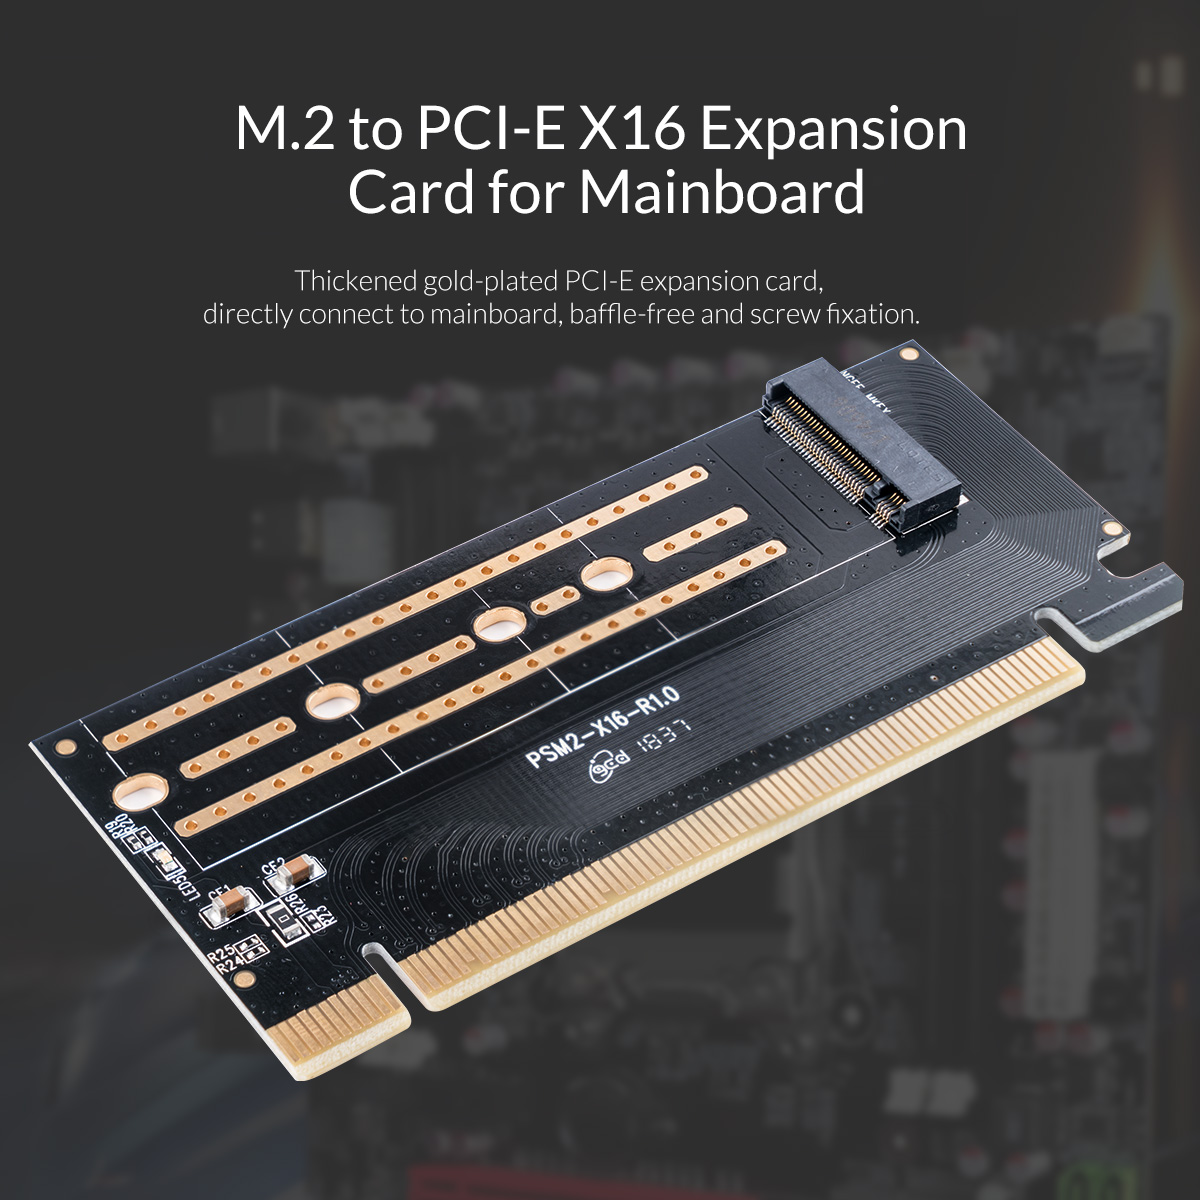 M.2 PCI-E X16 Expansion Card for Mainboard